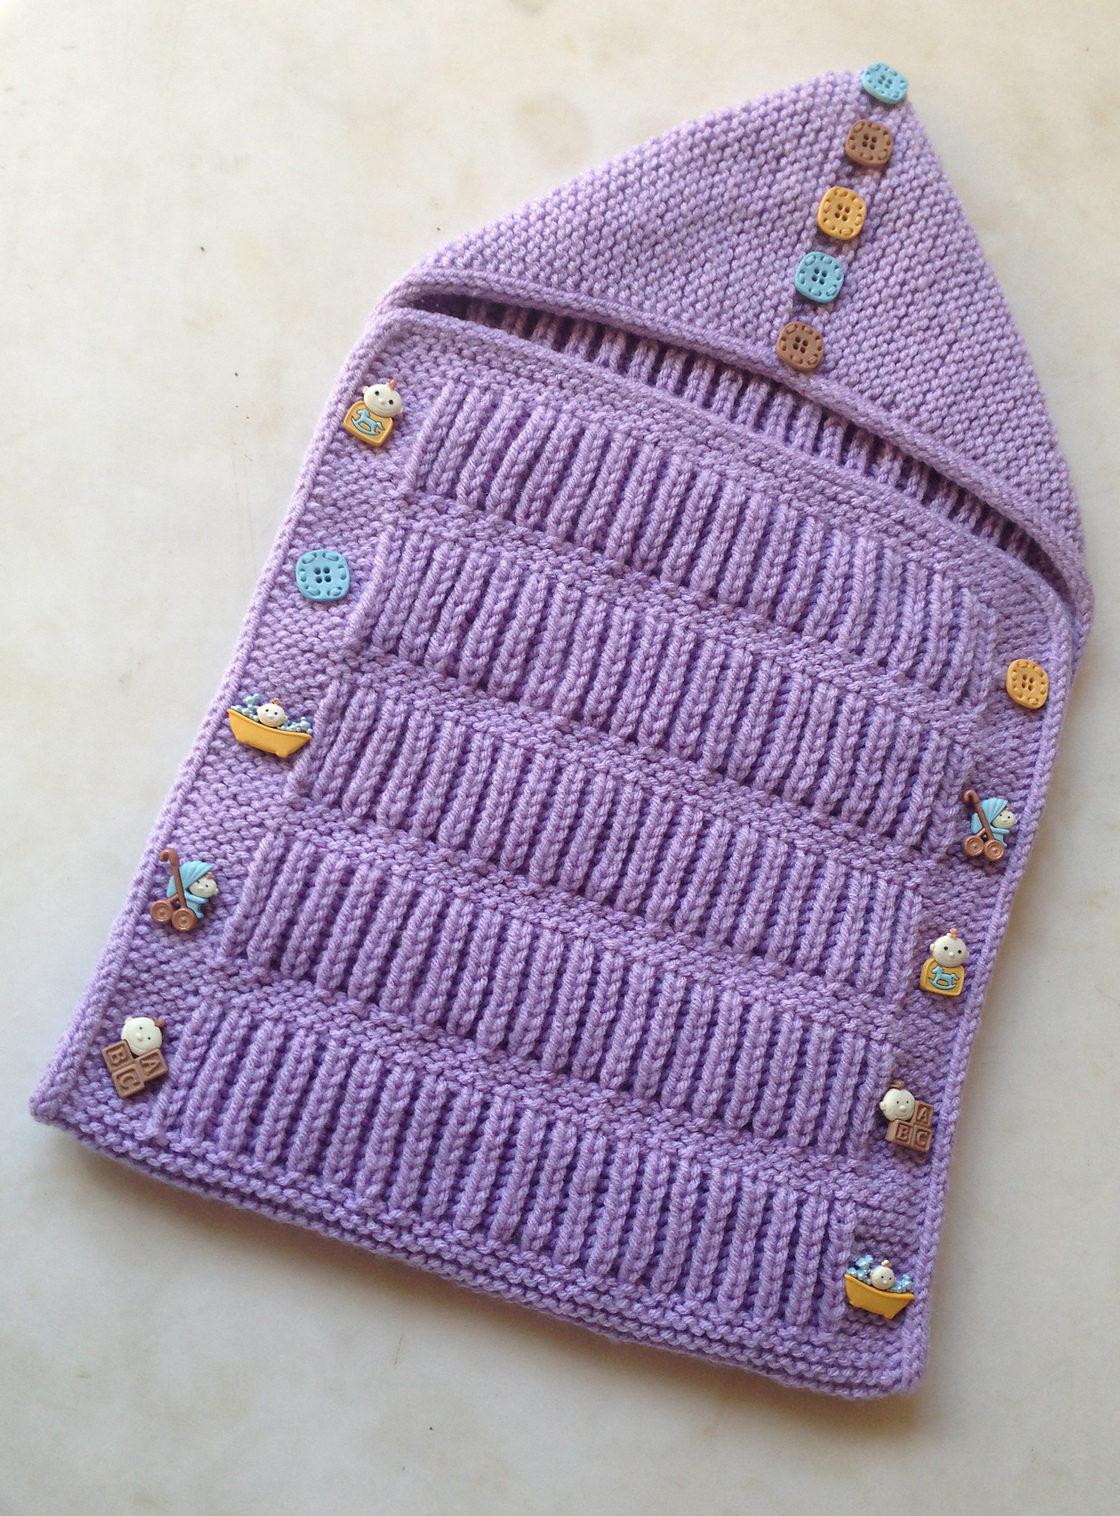 New Baby Cocoon Snuggly Sleep Sack Wrap Knitting Patterns Knitted Baby Cocoon Of Marvelous 42 Photos Knitted Baby Cocoon